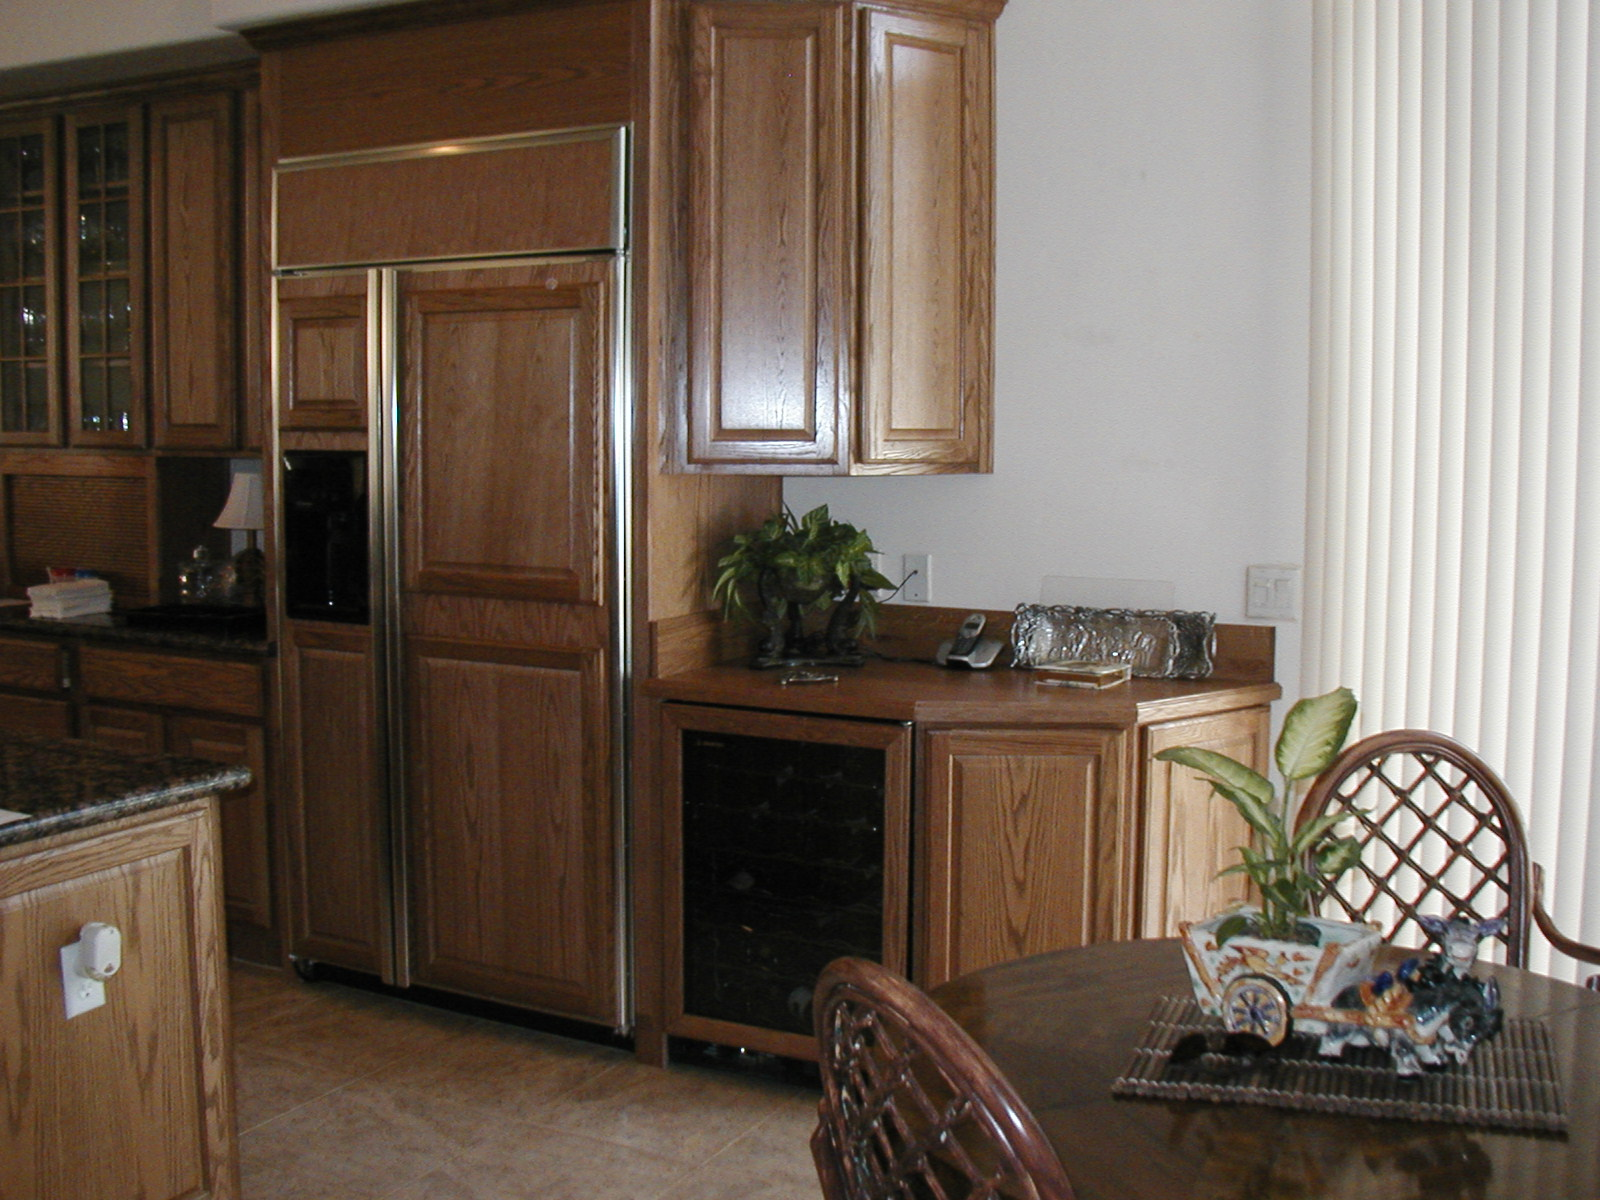 Counter Depth Refrigerators Questions House Remodeling